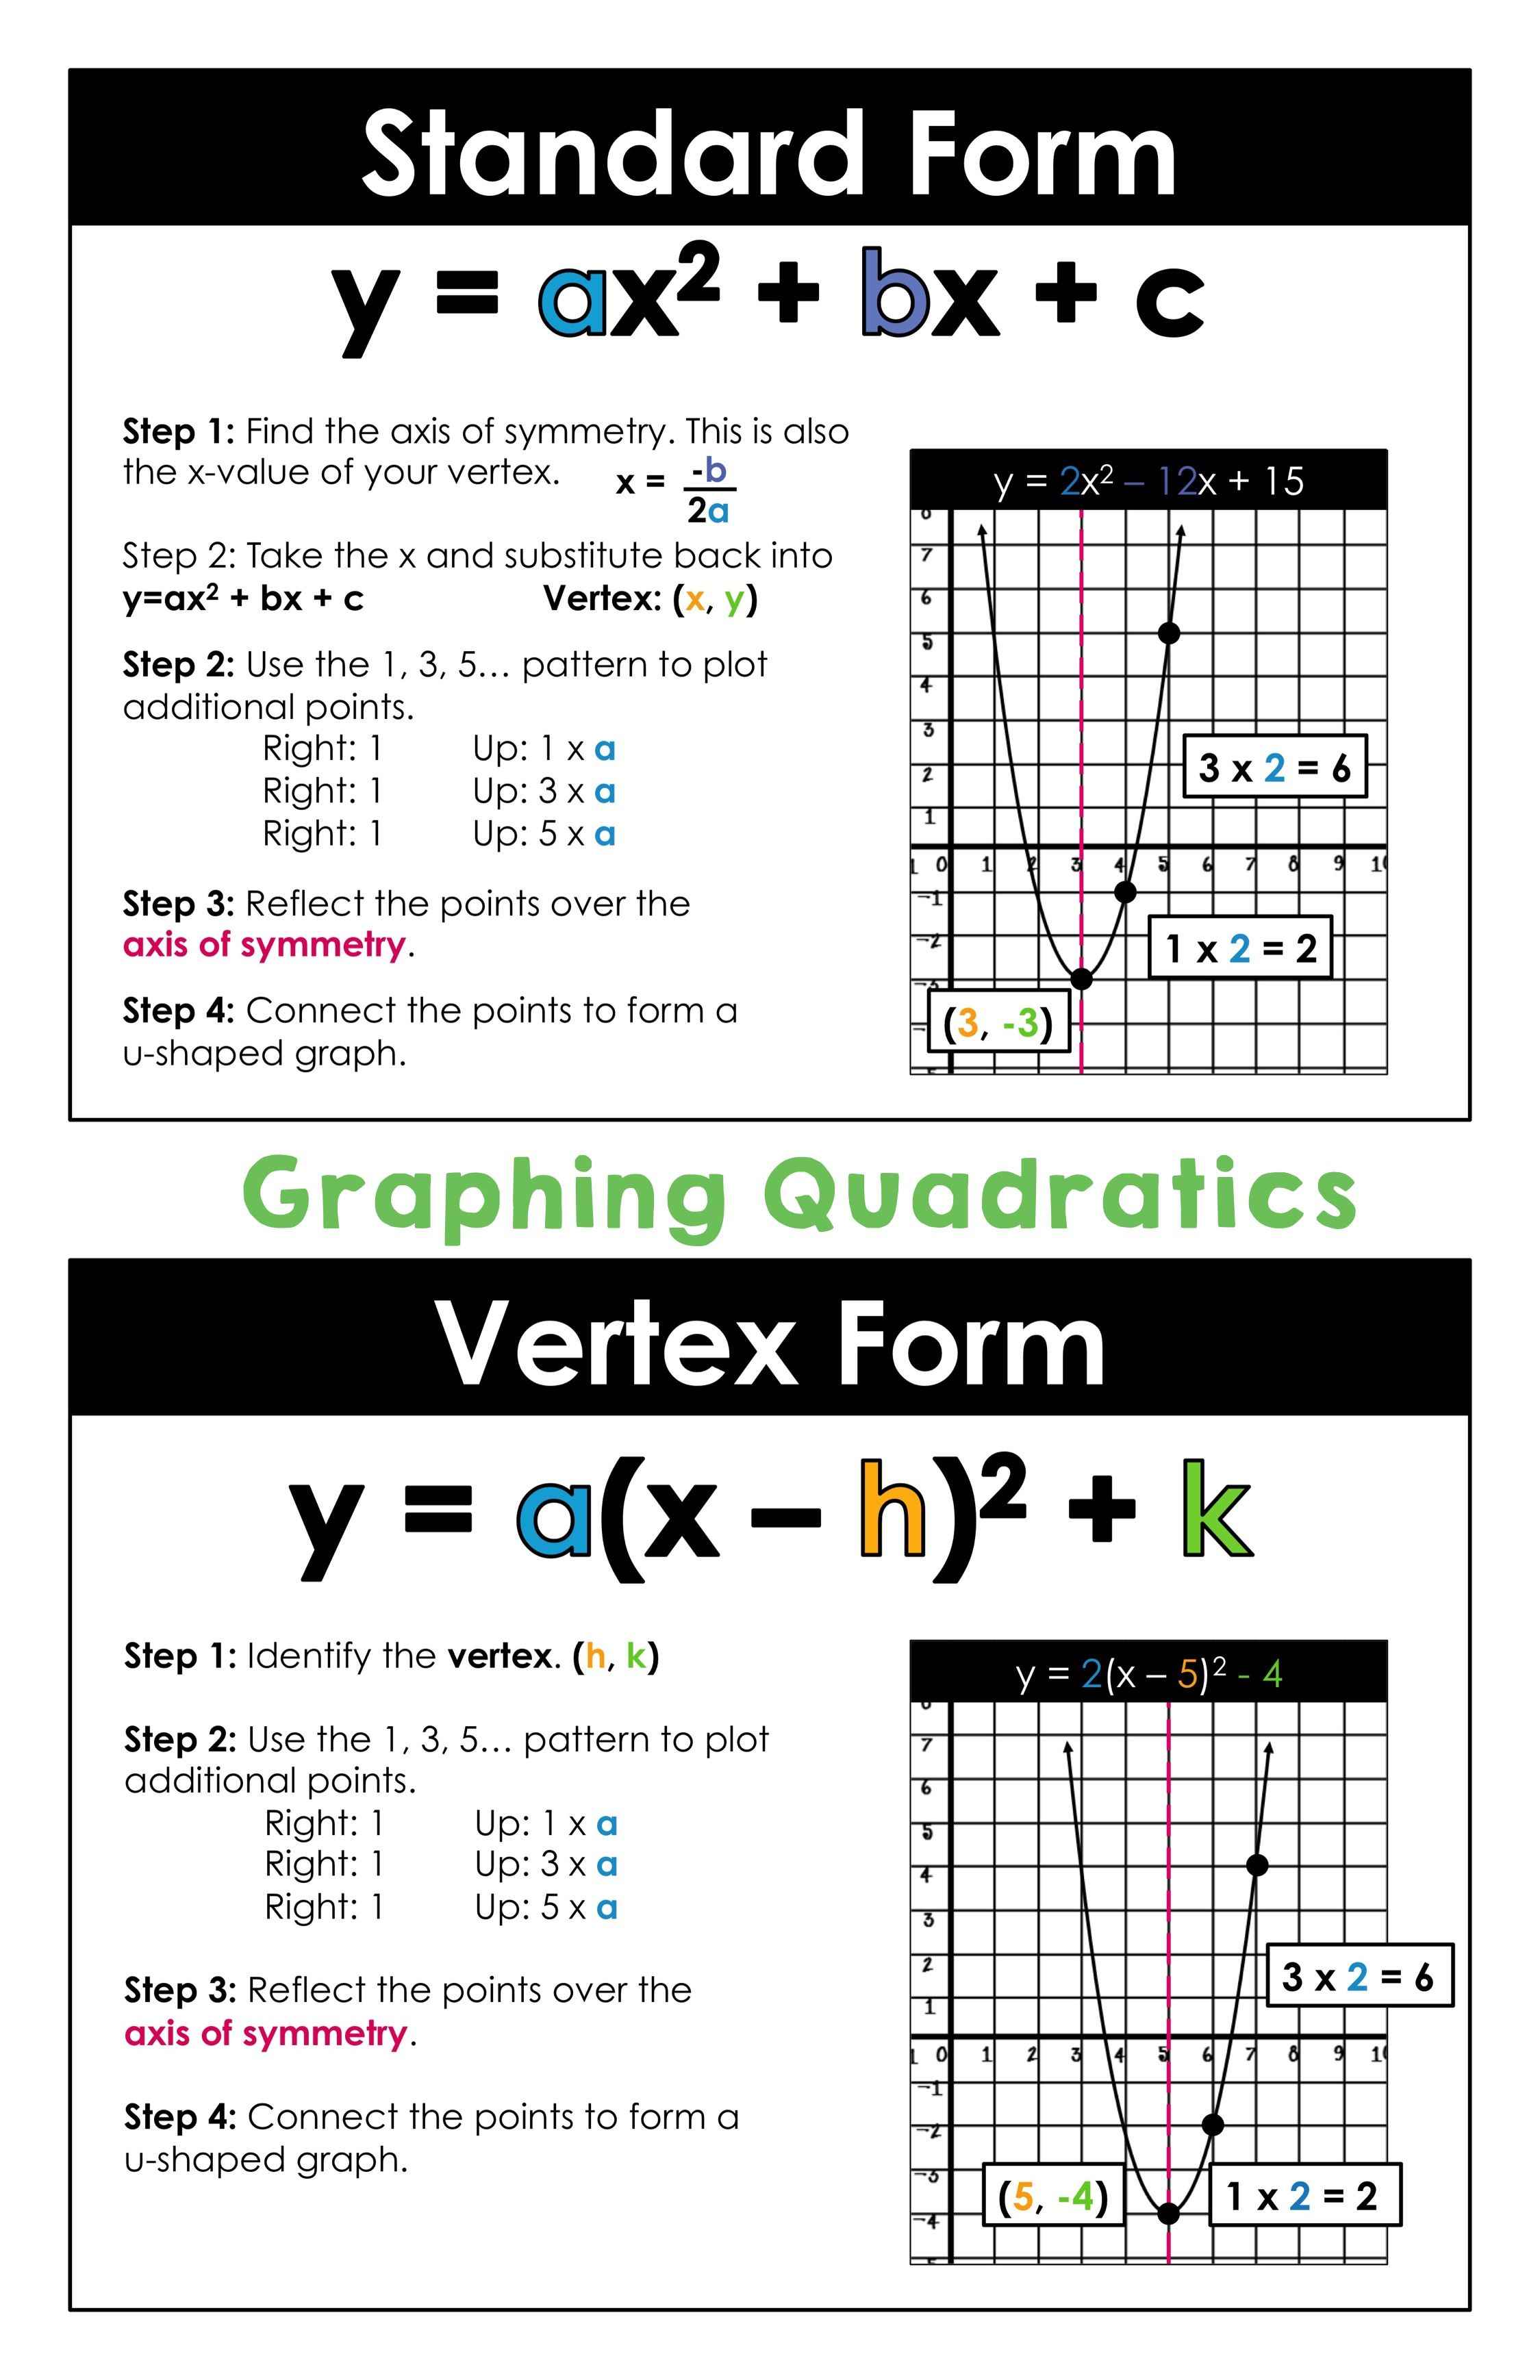 Graphing Quadratic Functions - Posters | Standard form, Color ...